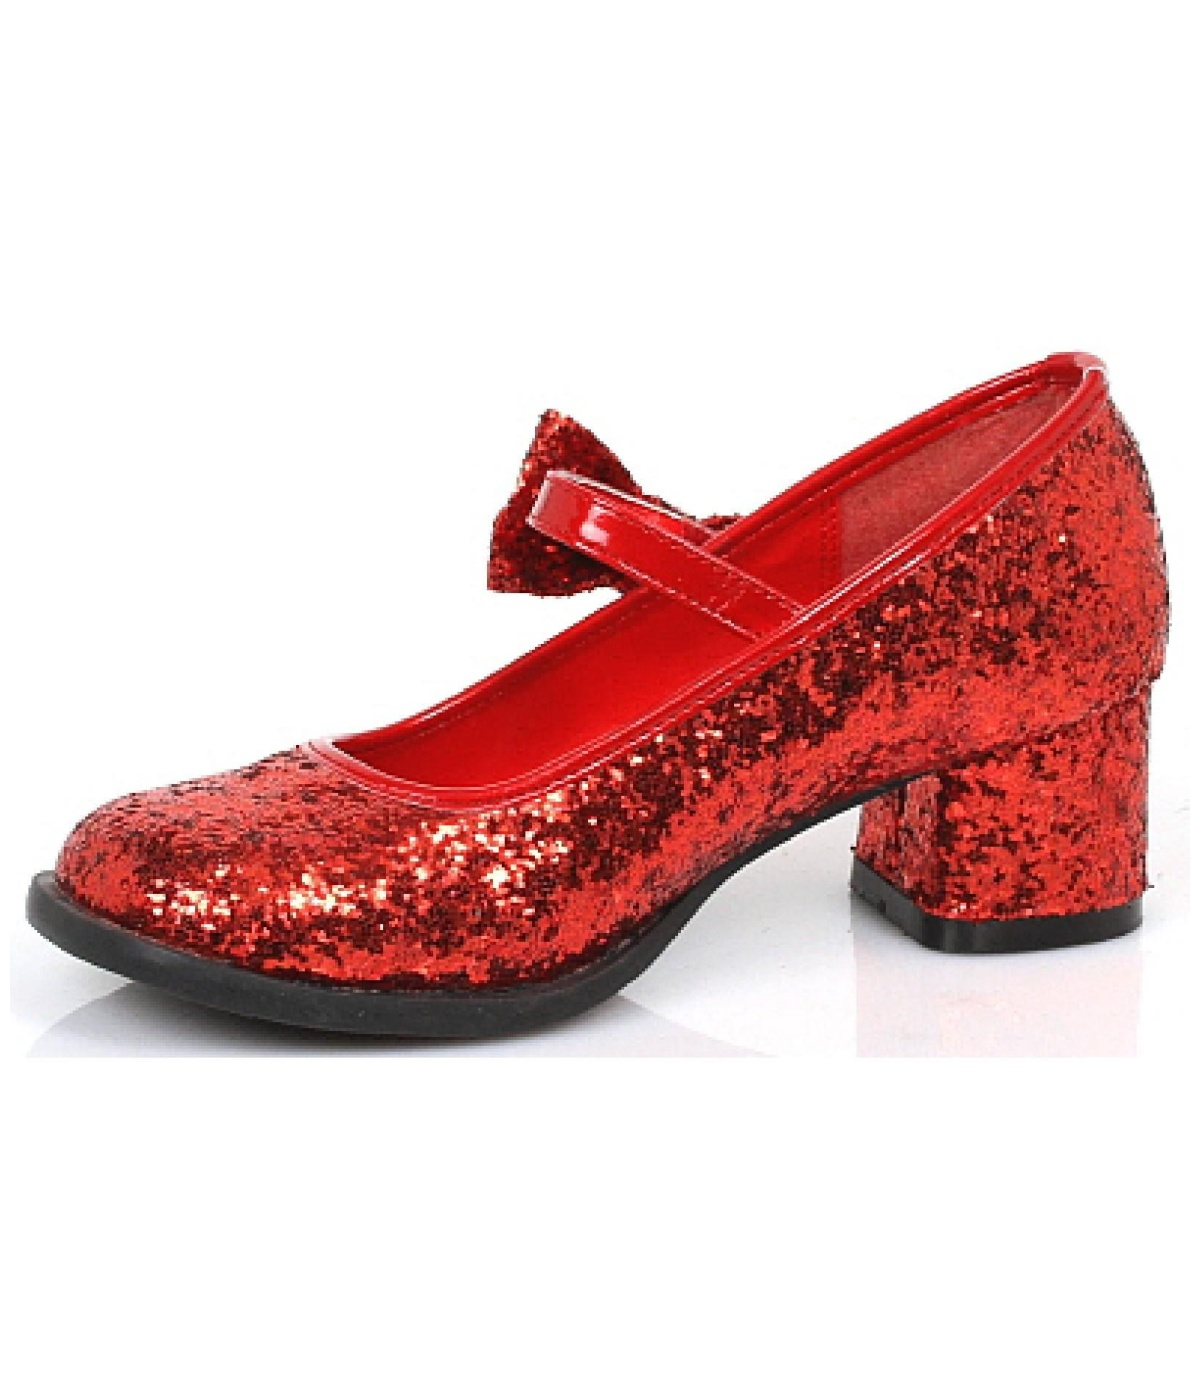 73cfc8bc8bcb Child Eden shoes in red glitter - Costume Accessory. Complete your costume  with these red